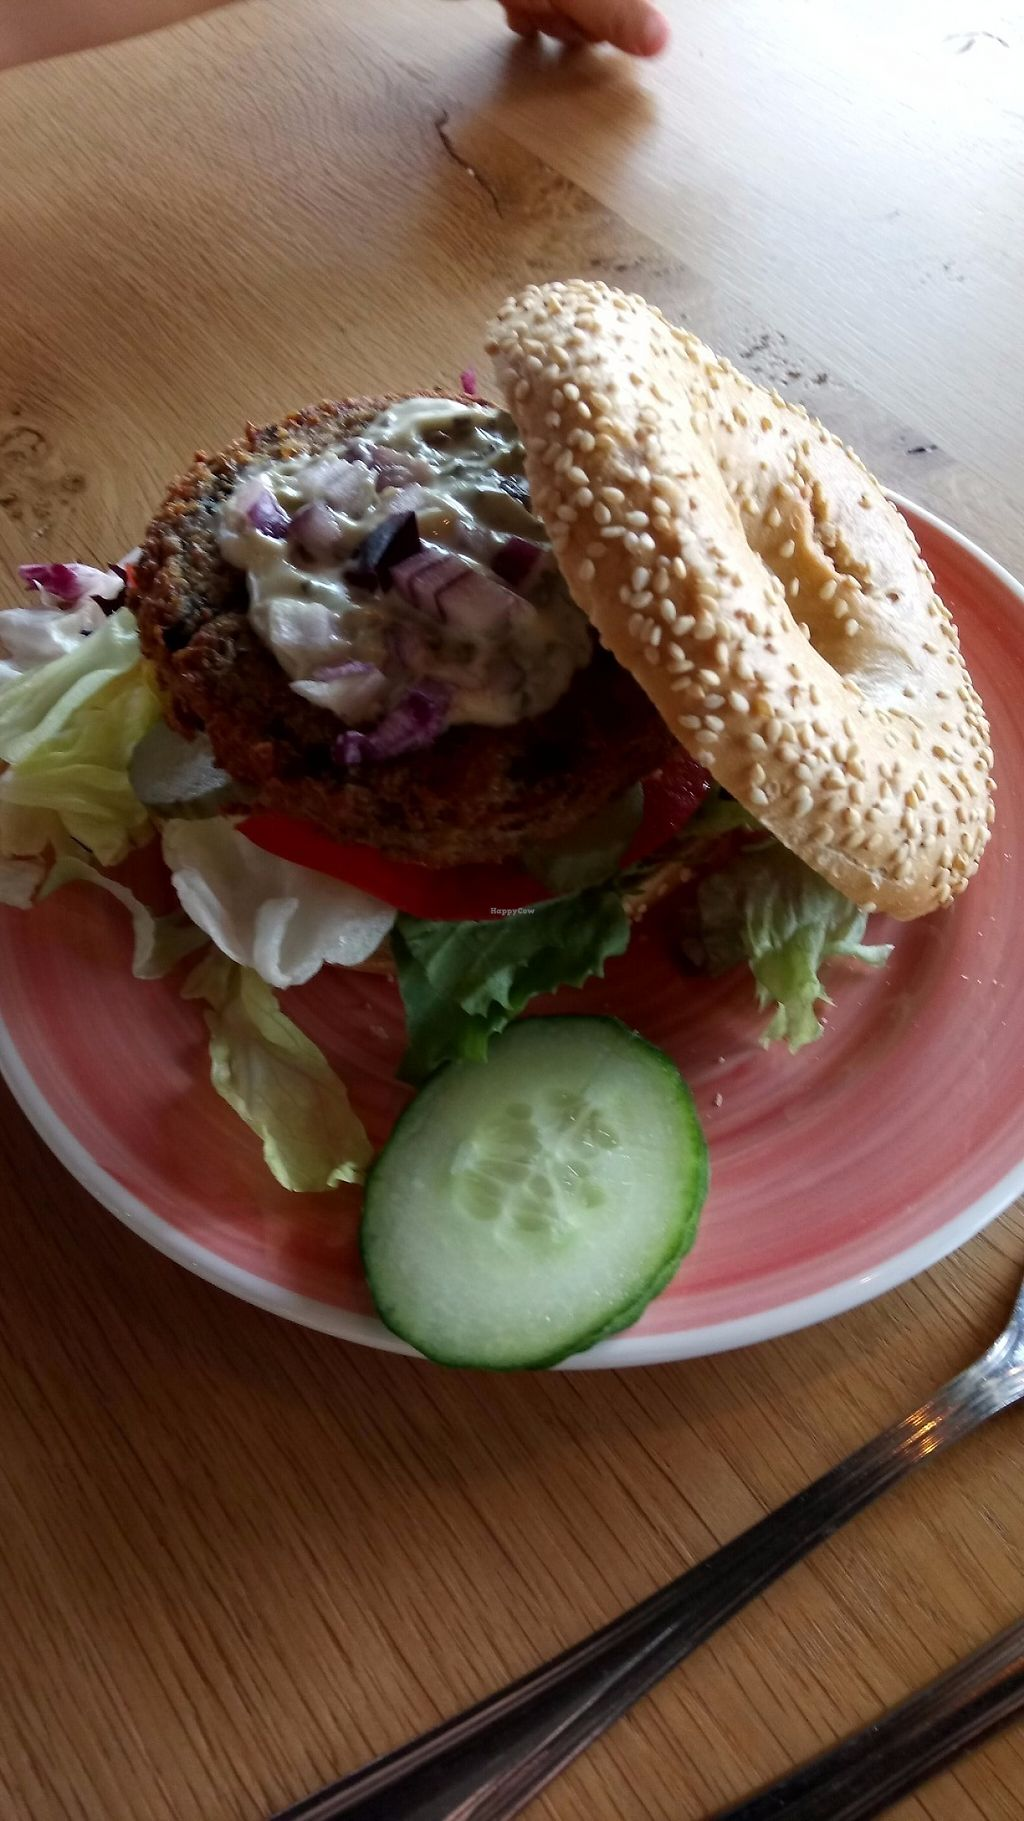 """Photo of Bagels & Beans - Vivaldistraat  by <a href=""""/members/profile/Shama2004"""">Shama2004</a> <br/>The Dutch weed burger (vegan), weed sauce, tomatoes, gherkins, red onions and lettuce. My 4 yo loved it <br/> May 29, 2017  - <a href='/contact/abuse/image/64864/263845'>Report</a>"""